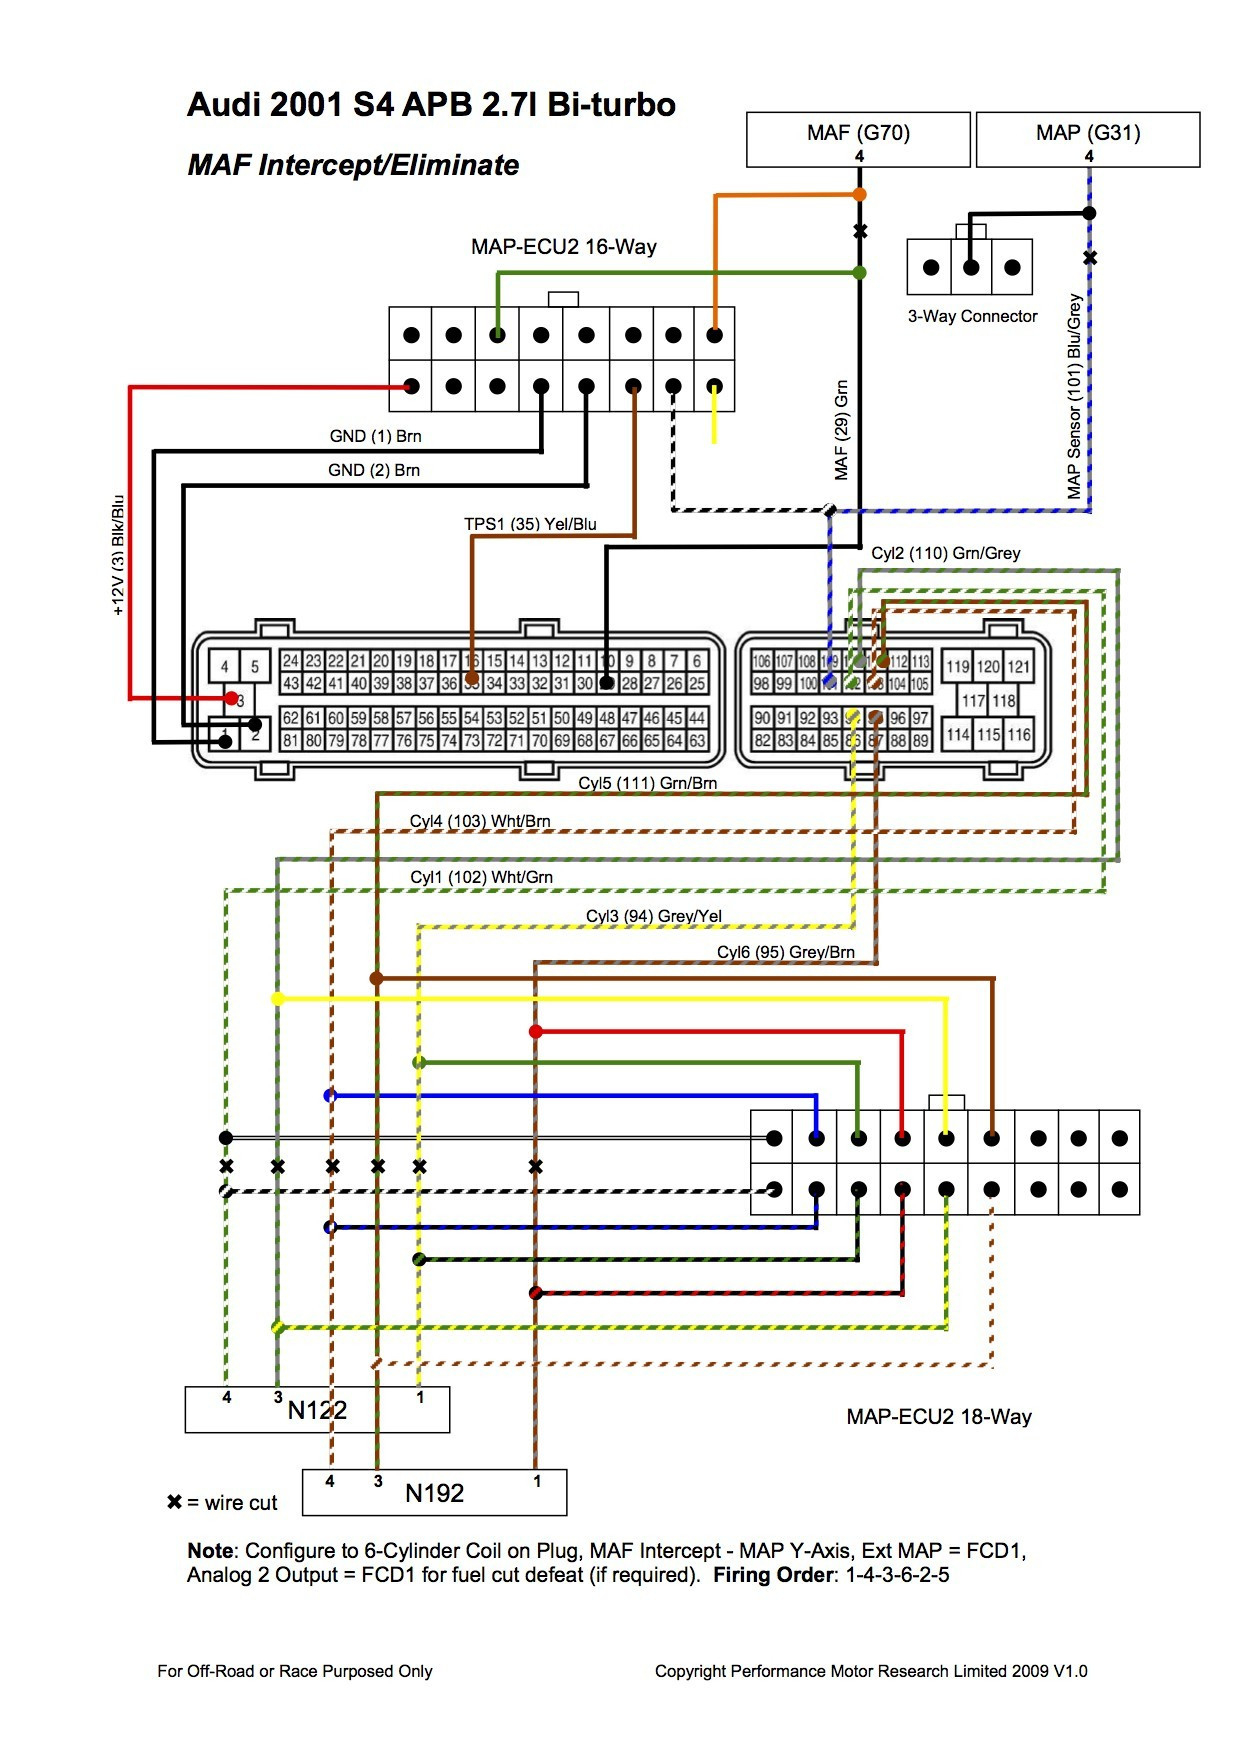 2008 Toyota Tacoma Trailer Wiring Diagram - Wiring Diagrams Hubs - Tacoma Trailer Wiring Diagram